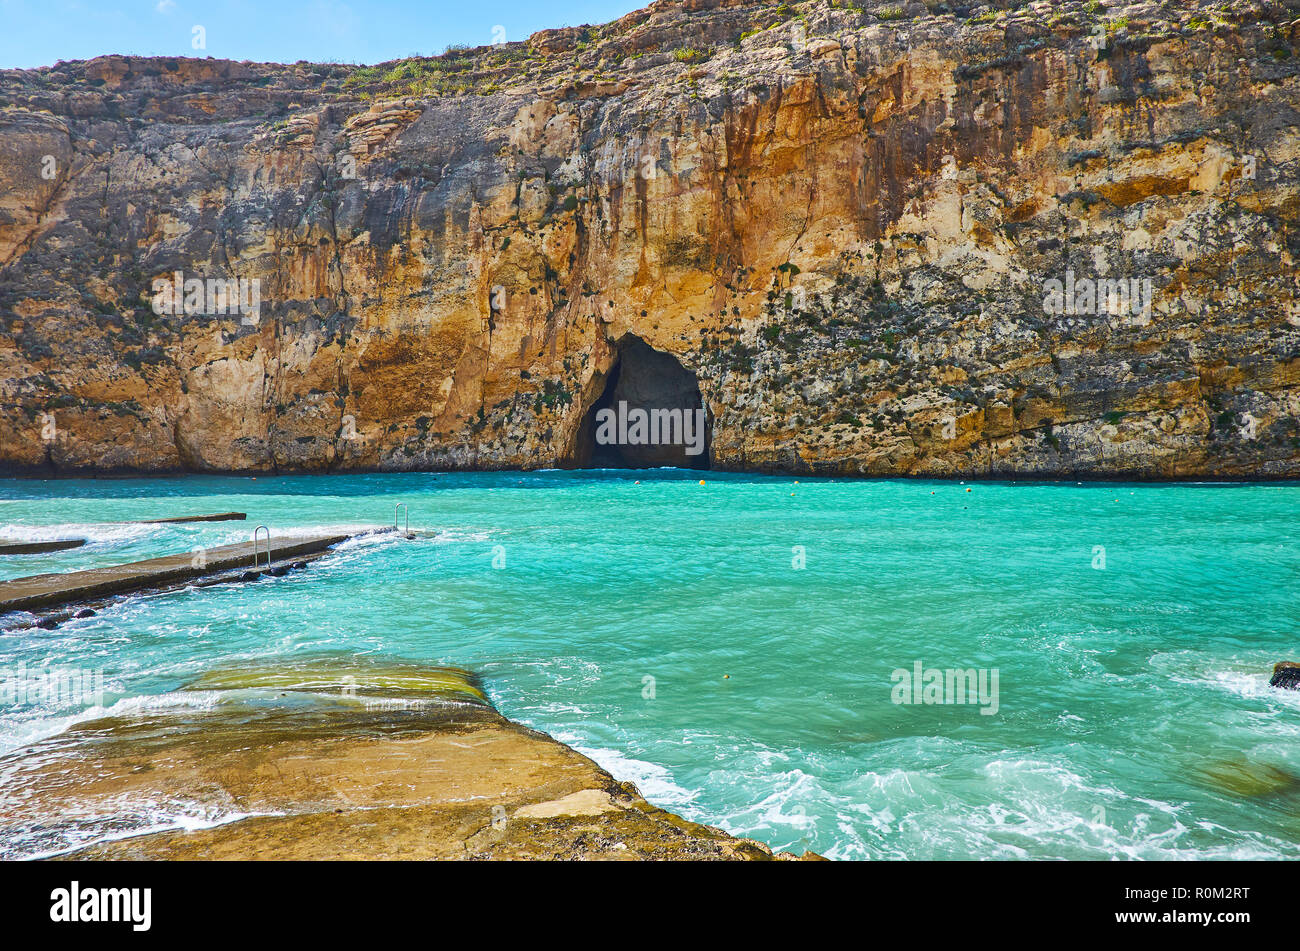 Enjoy the picturesque beach of Dwejra Inland sea with a view on the Blue Hole - the grotto, connecting this place with main Mediterranean waters, San  - Stock Image